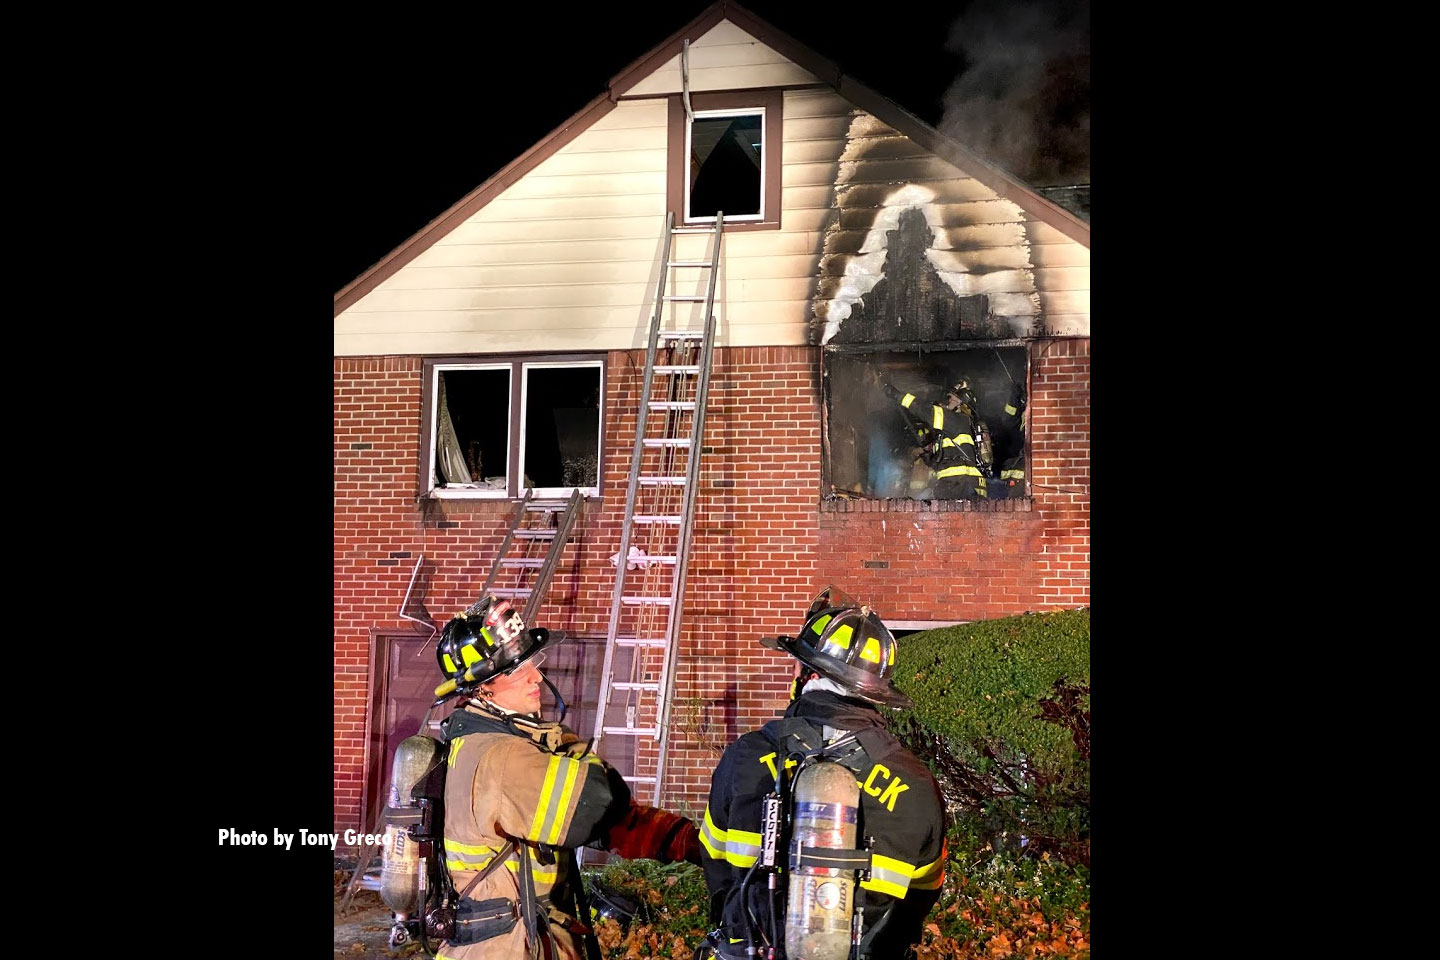 One civilian and one firefighter reportedly sustained injuries in the fire.